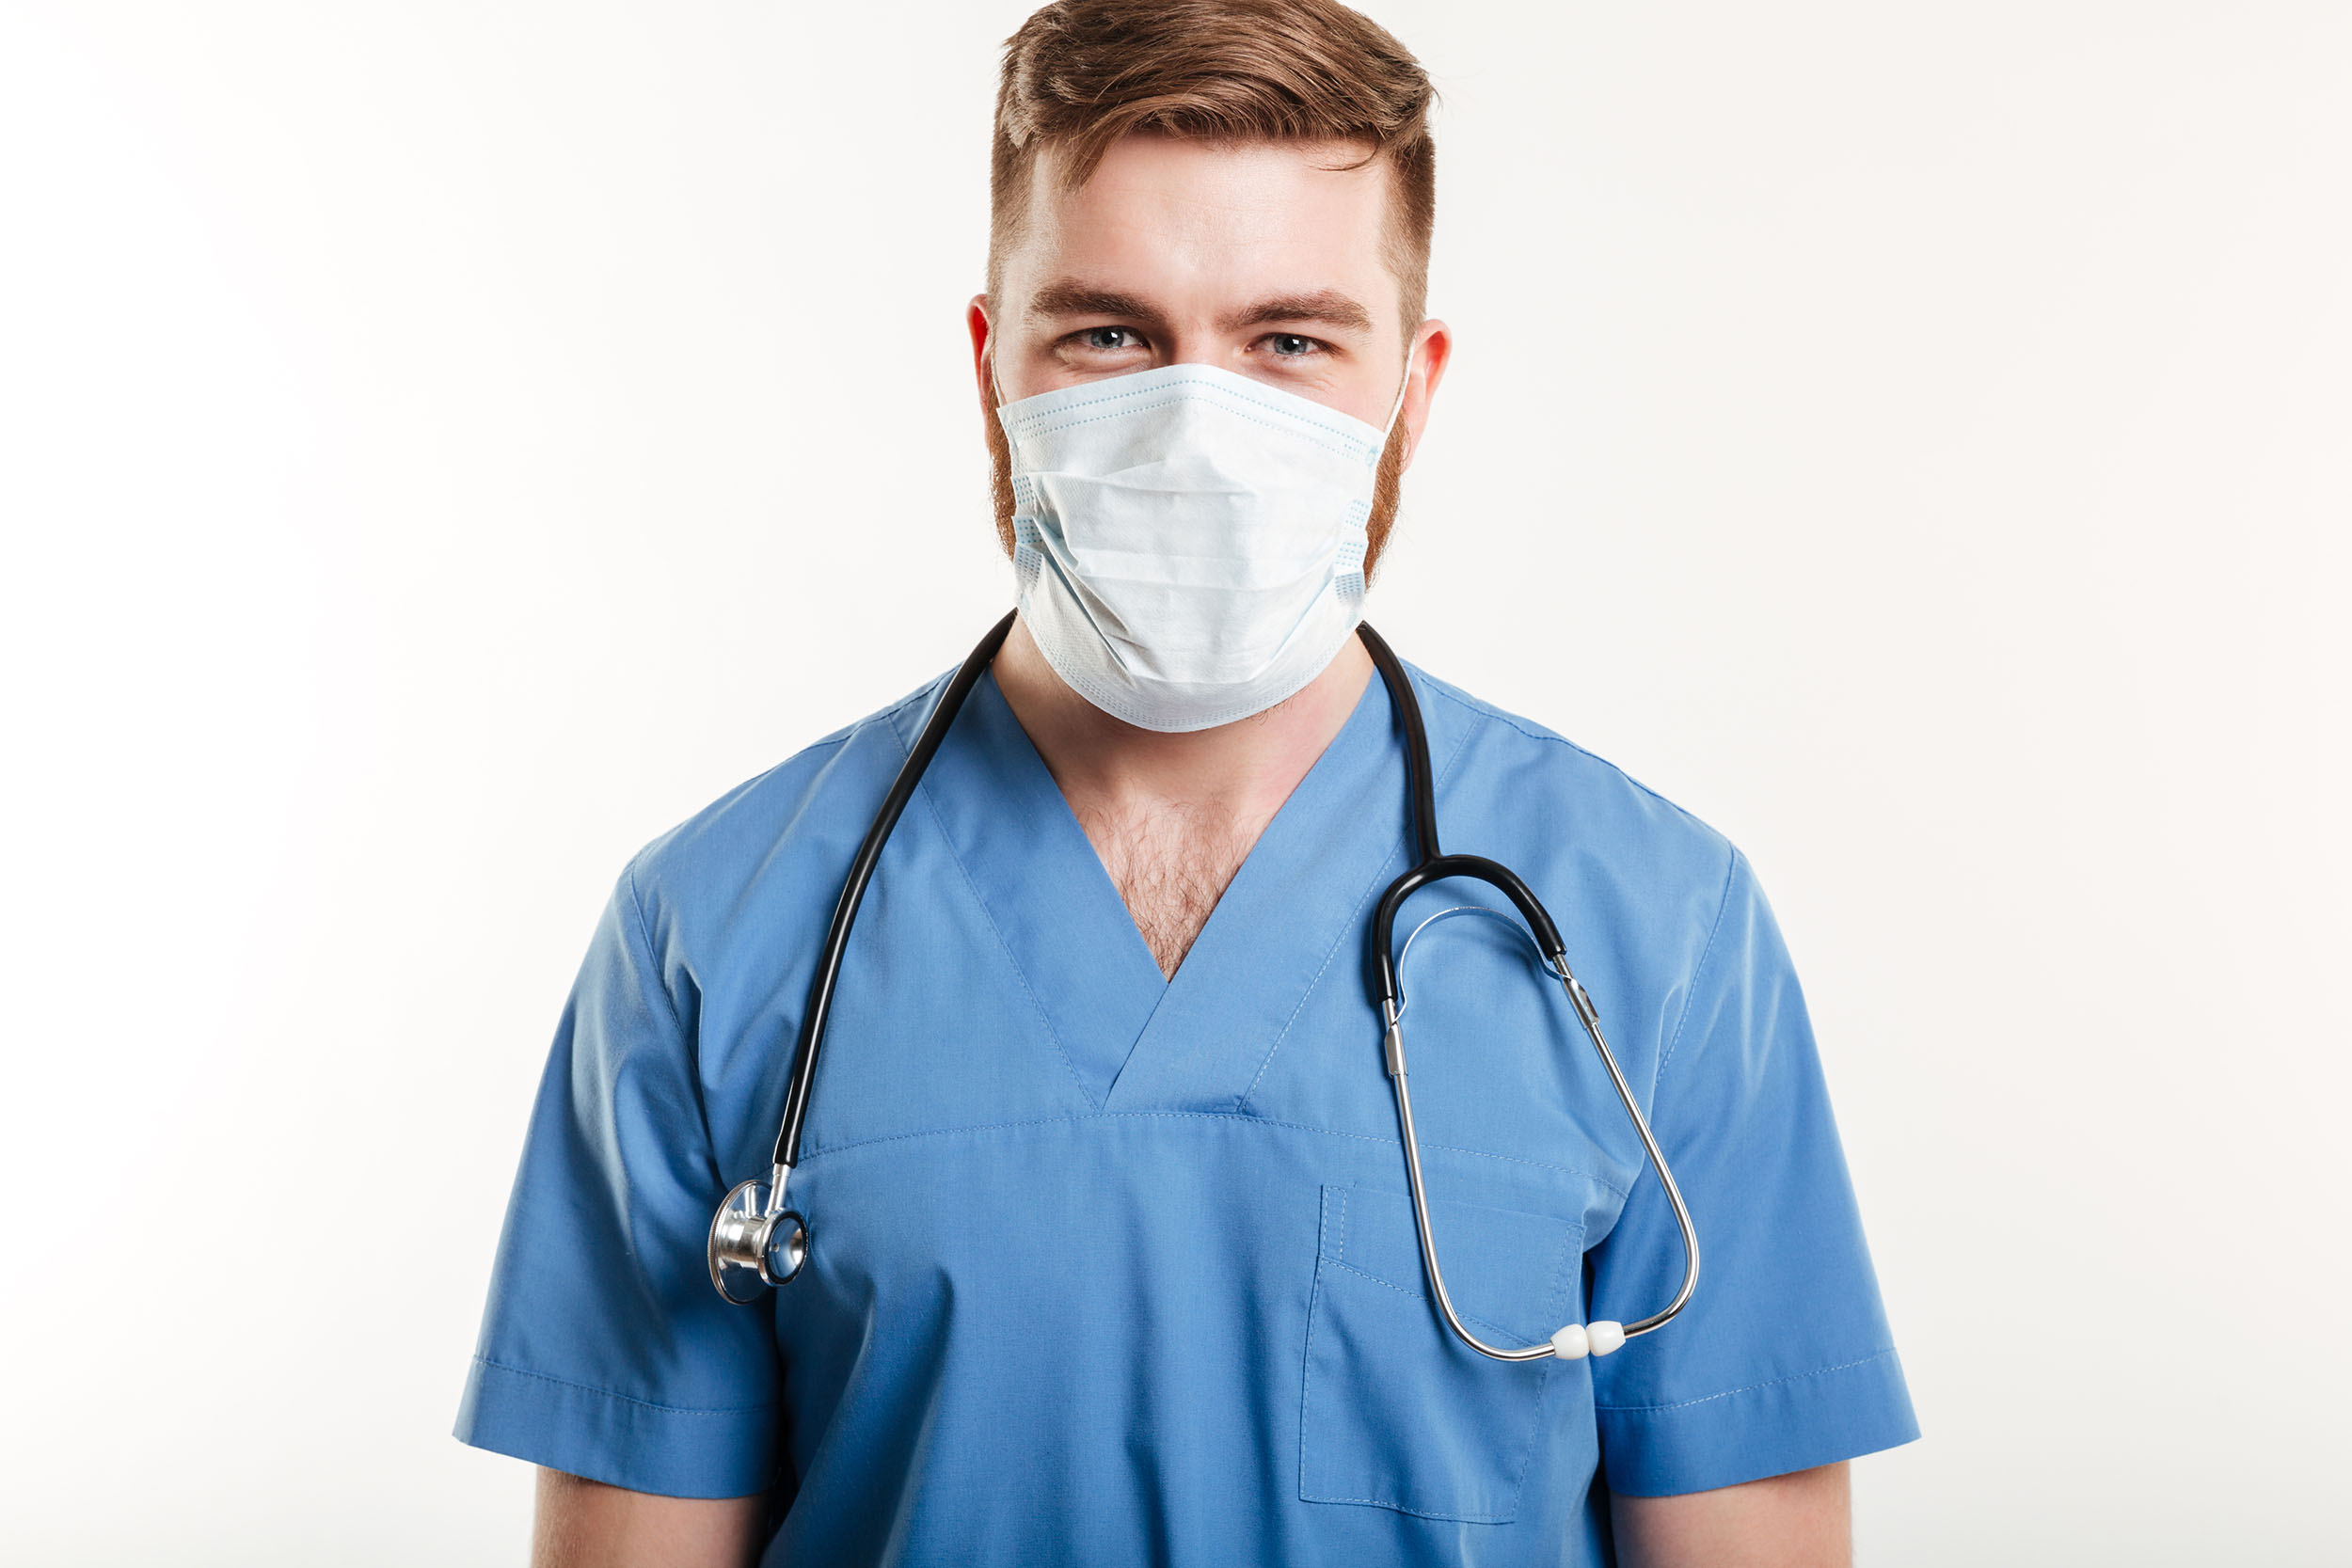 Portrait of a male surgeon wearing stethoscope and mask isolated on white background